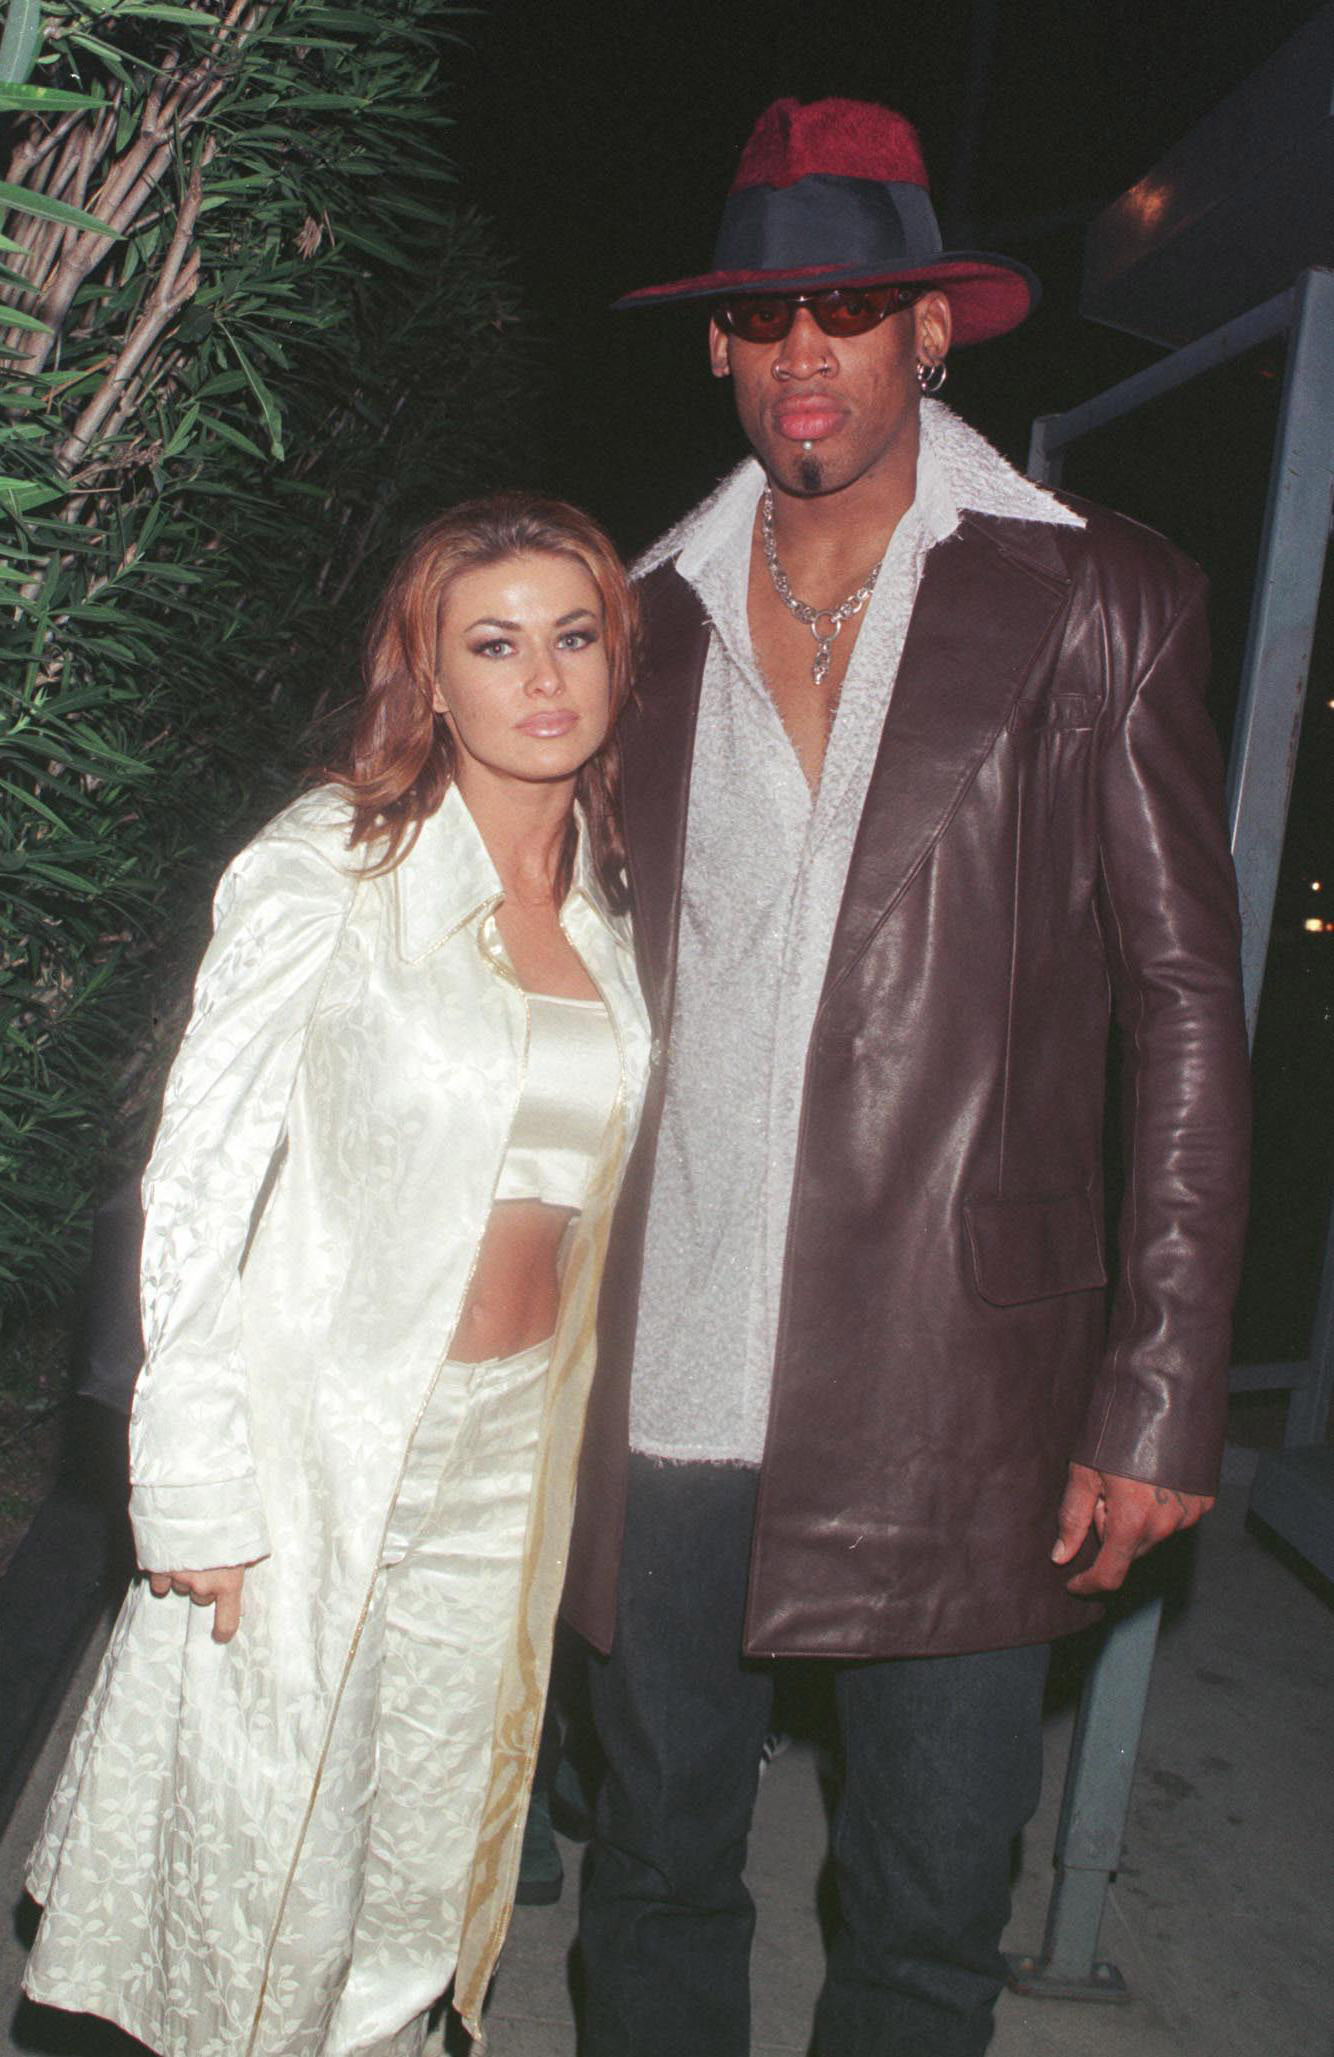 Dennis Rodman with Carmen Electra in the past